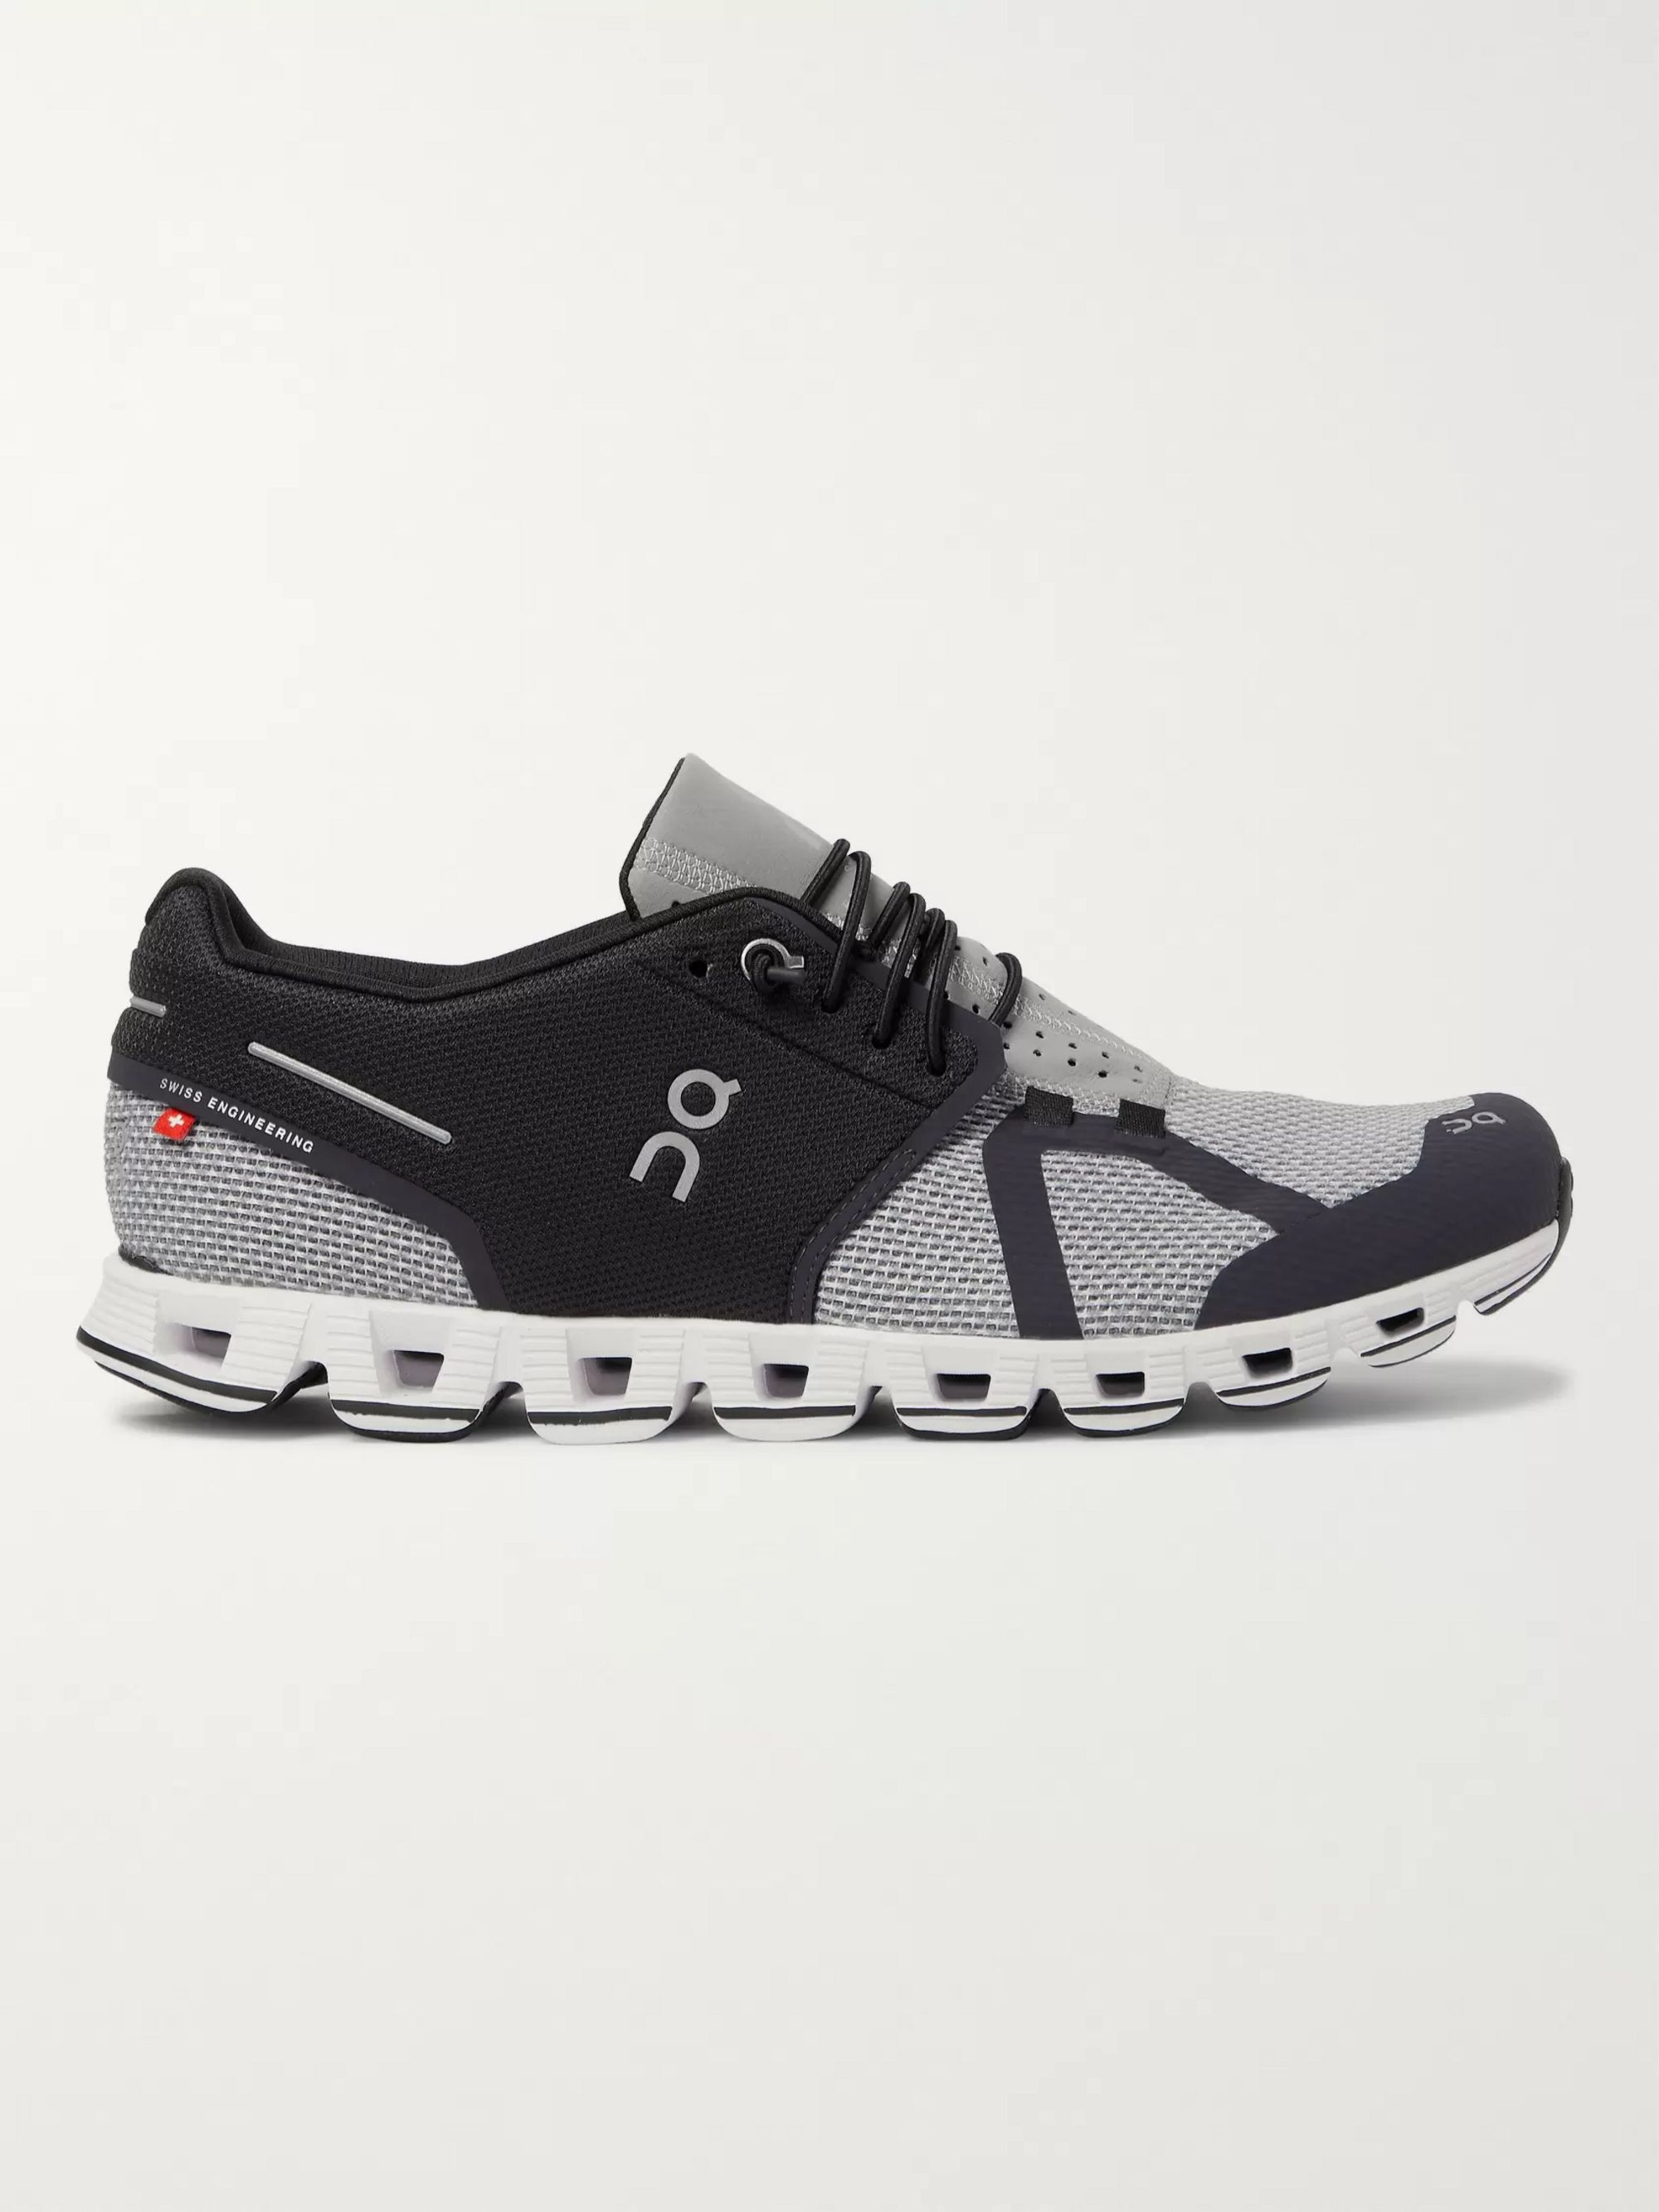 dq running shoes